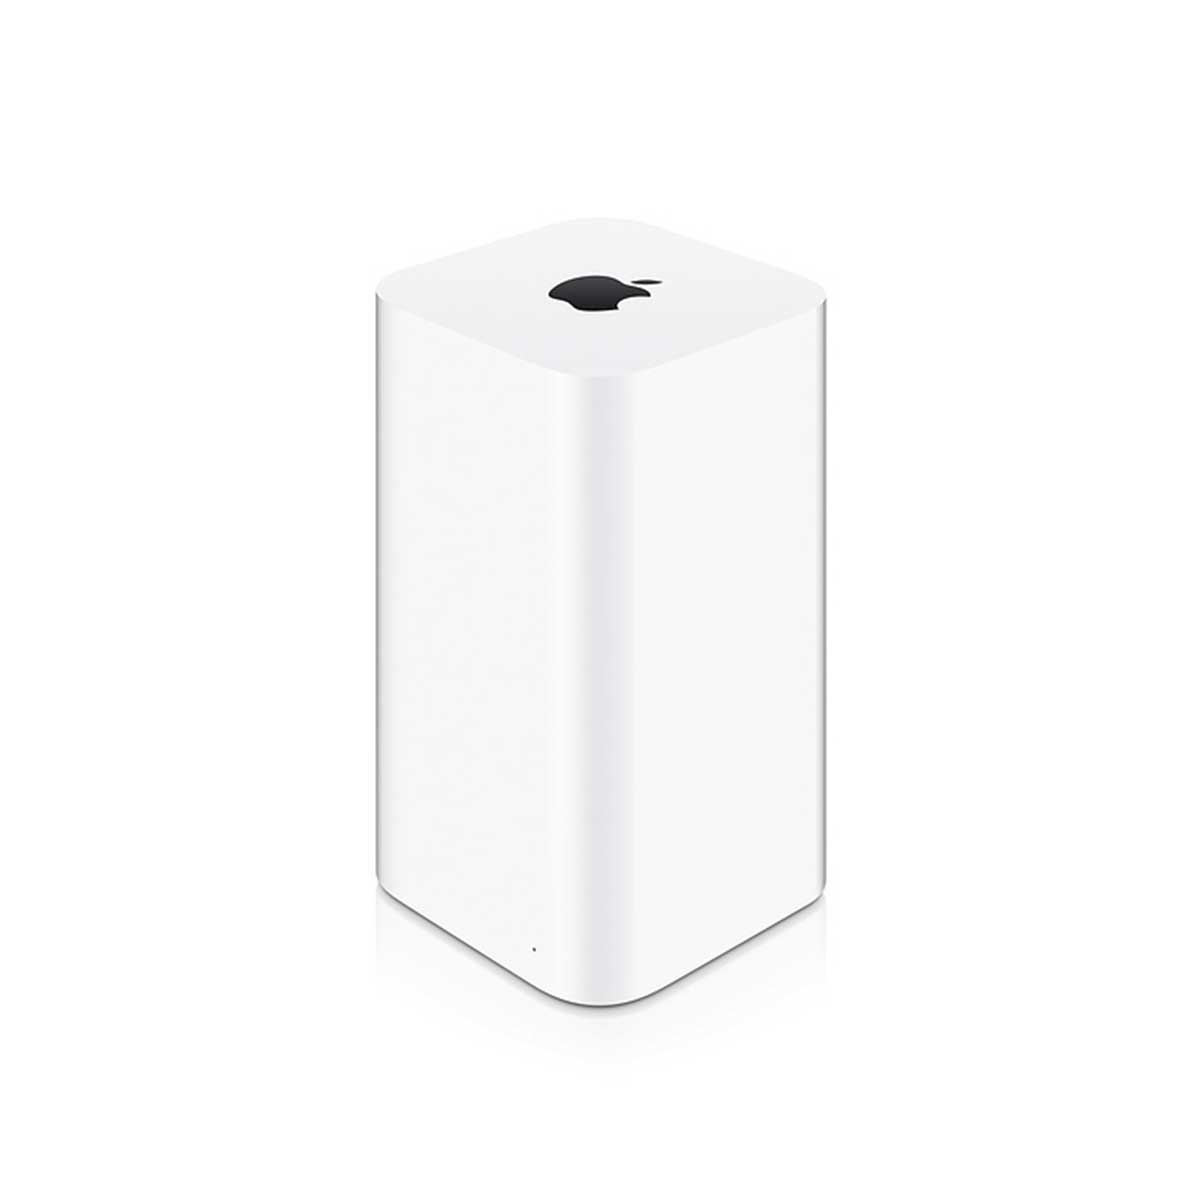 AirPort Time Capsule 5th Generation